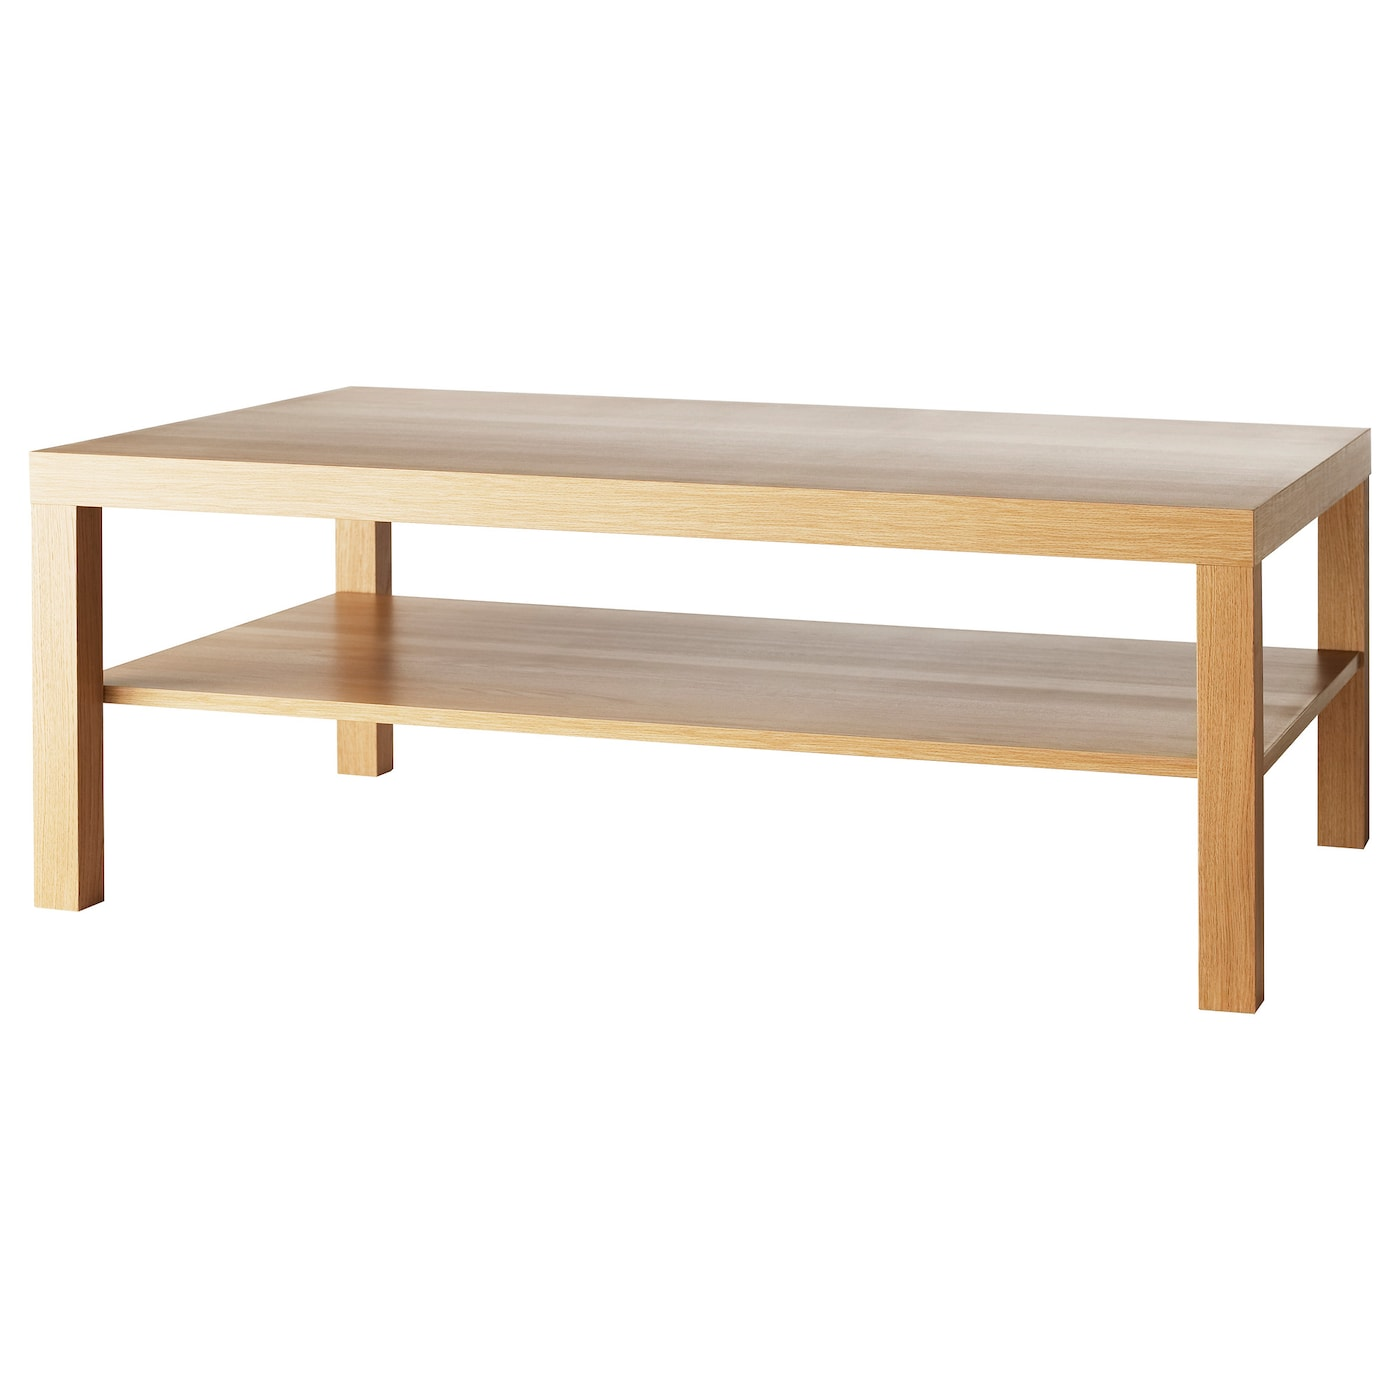 Lack Coffee Table Oak Effect 118x78 Cm Ikea